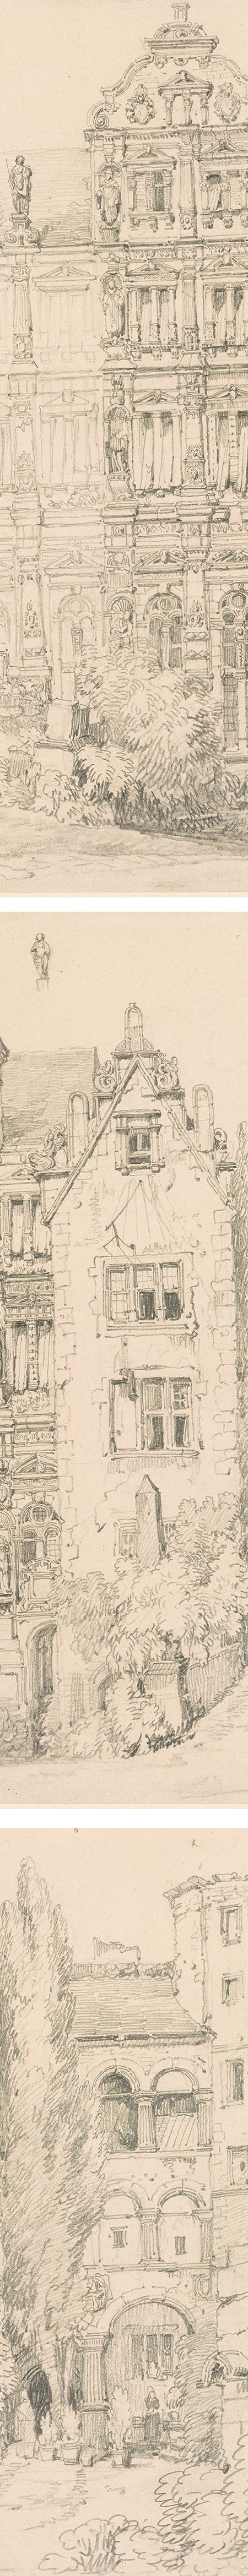 The Castle at Heidelberg, Samuel Prout pencil drawing (details)